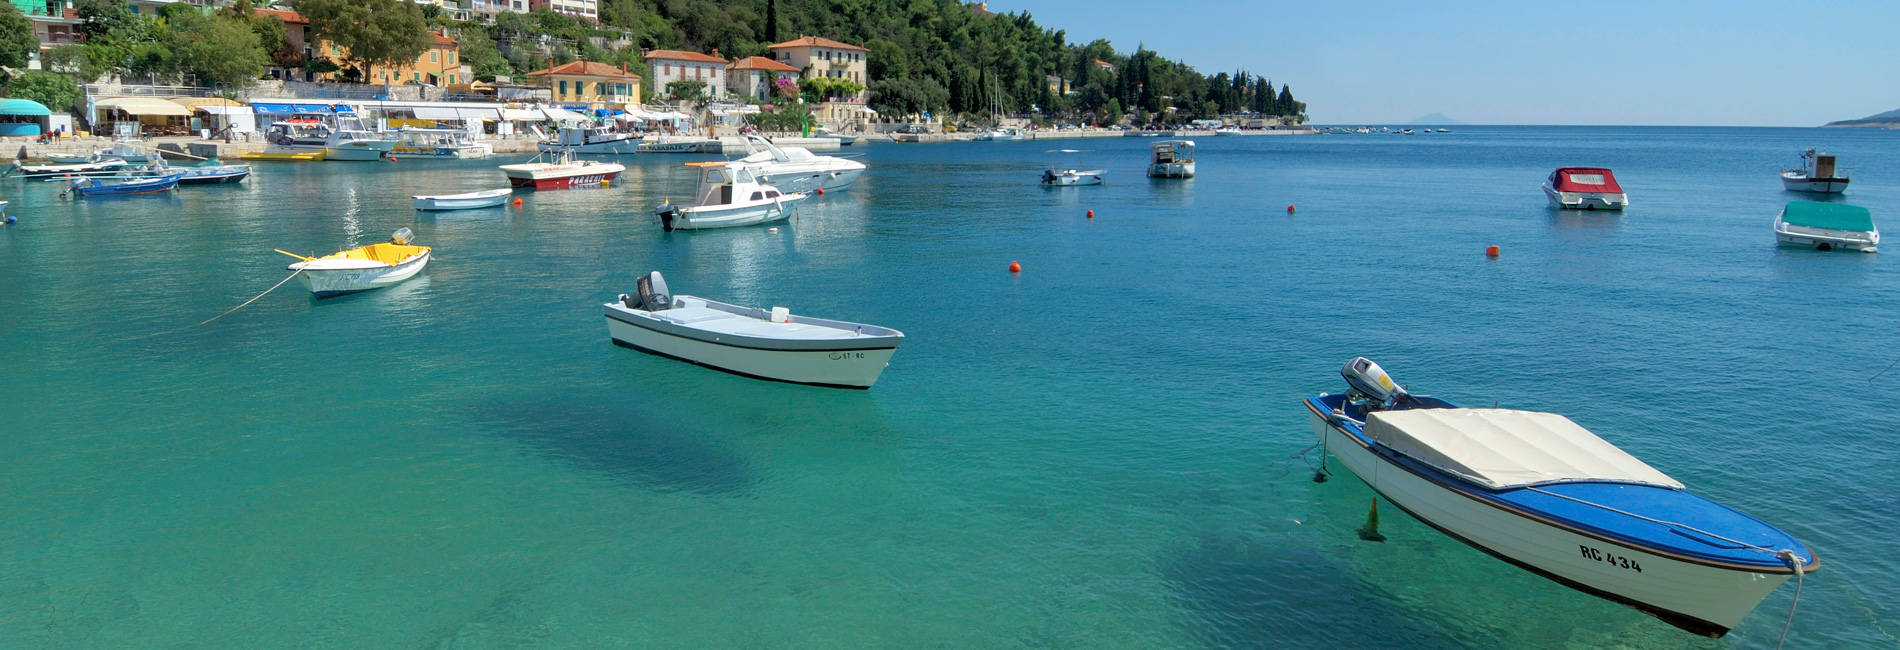 Sea at Labin end Rabac | Adria Camps